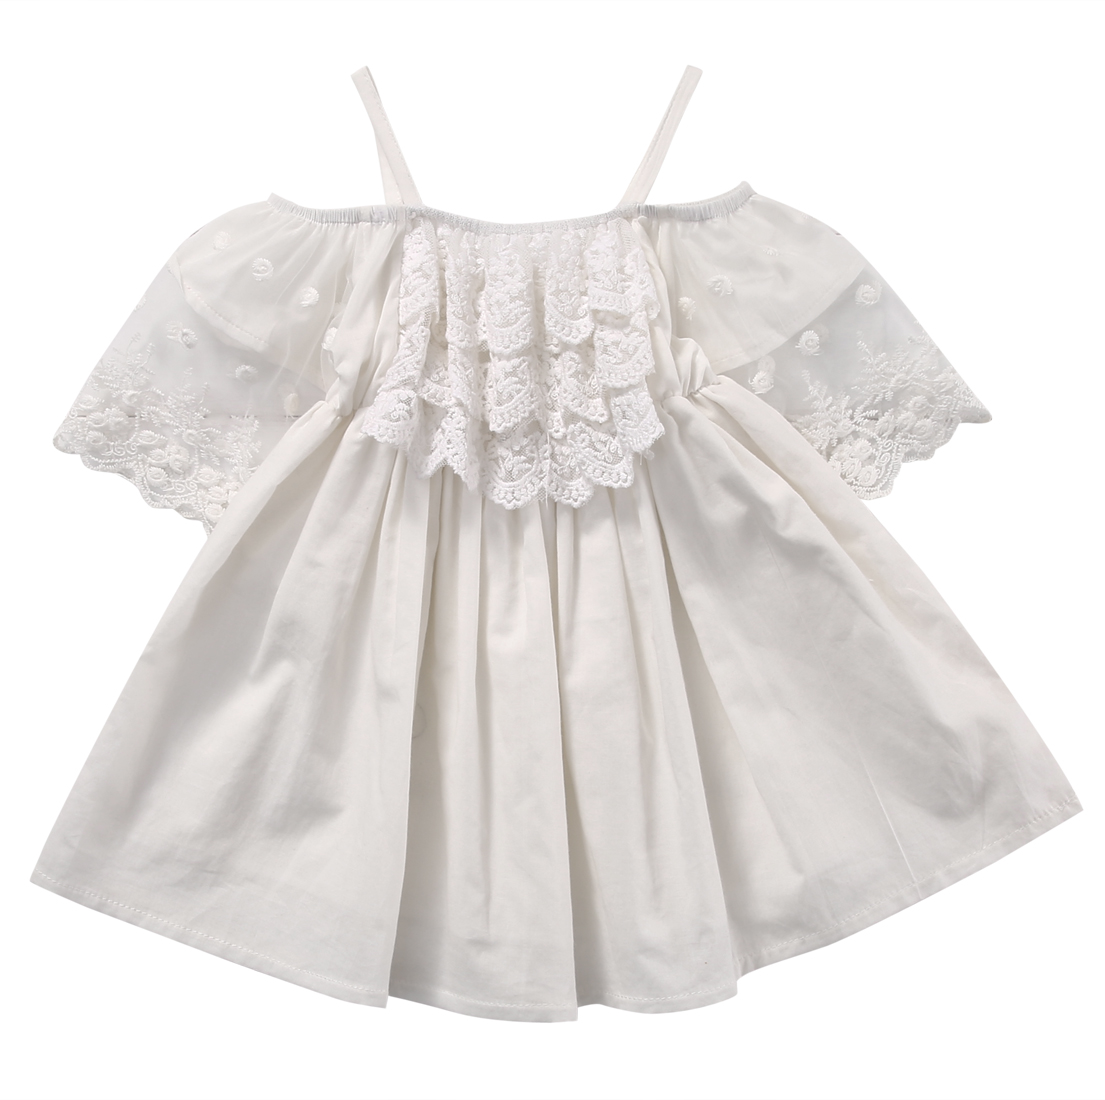 2017 New Cute Fashion Toddler Kids Girls Summer Dress Off-shoulder Ruffles Lace Dresses Solid White Princess Costume 2-7Y ems dhl free shipping toddler little girl s 2017 princess ruffles layers sleeveless lace dress summer style suspender